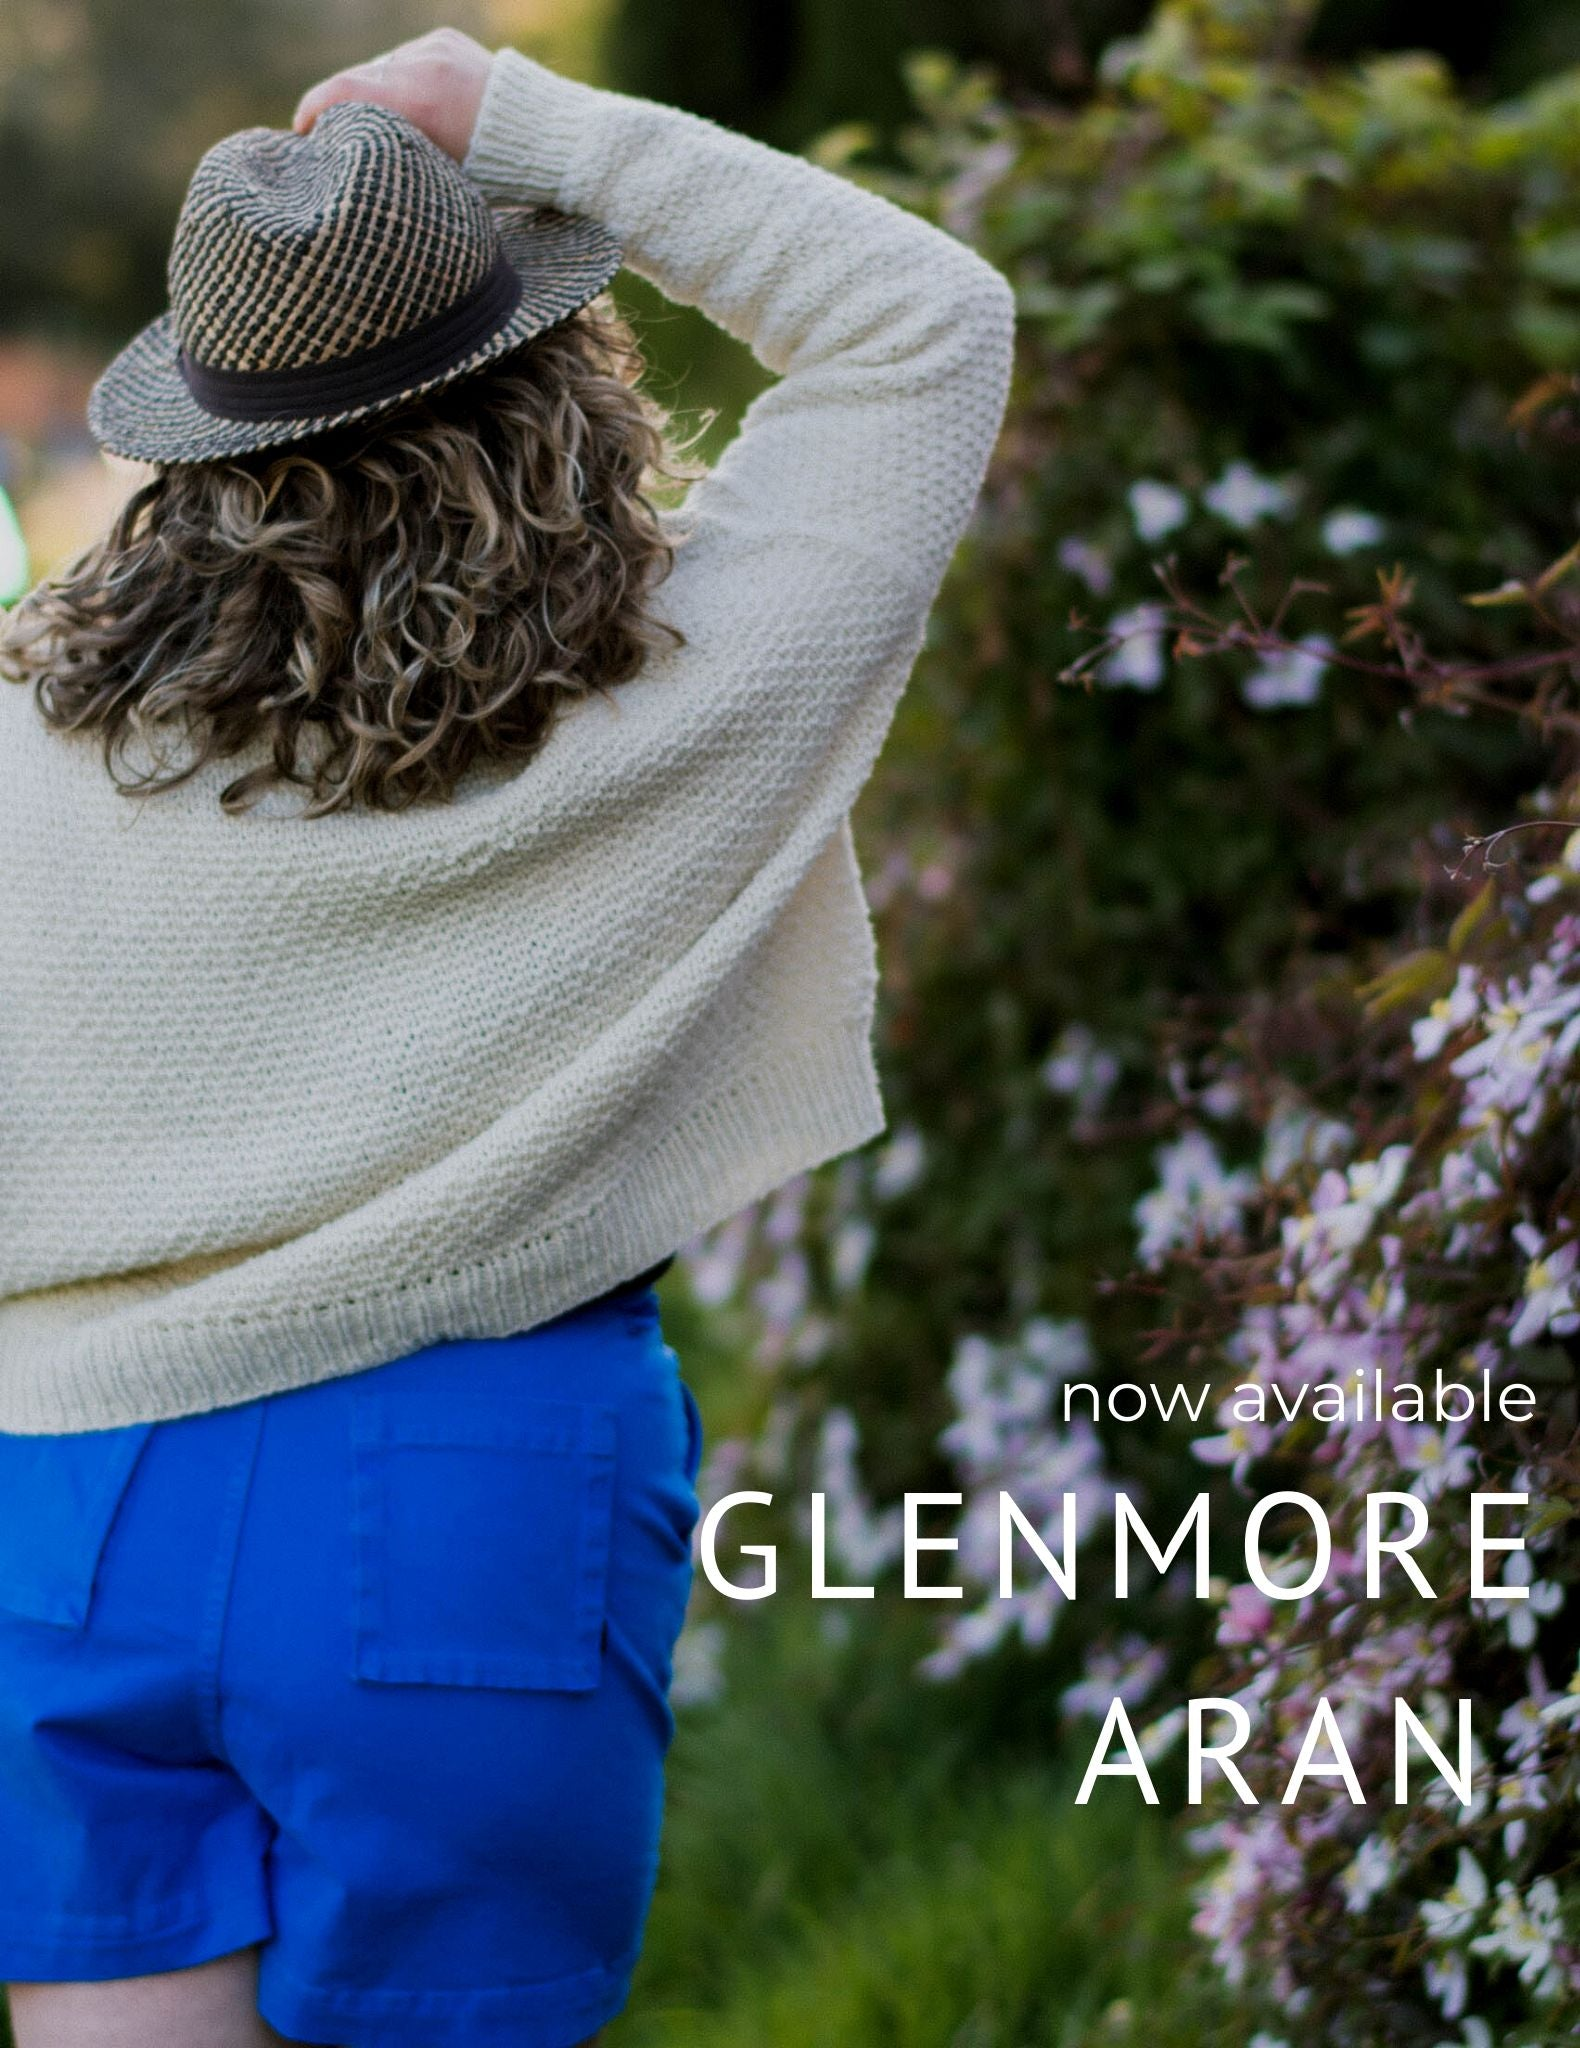 Introducing Glenmore Aran